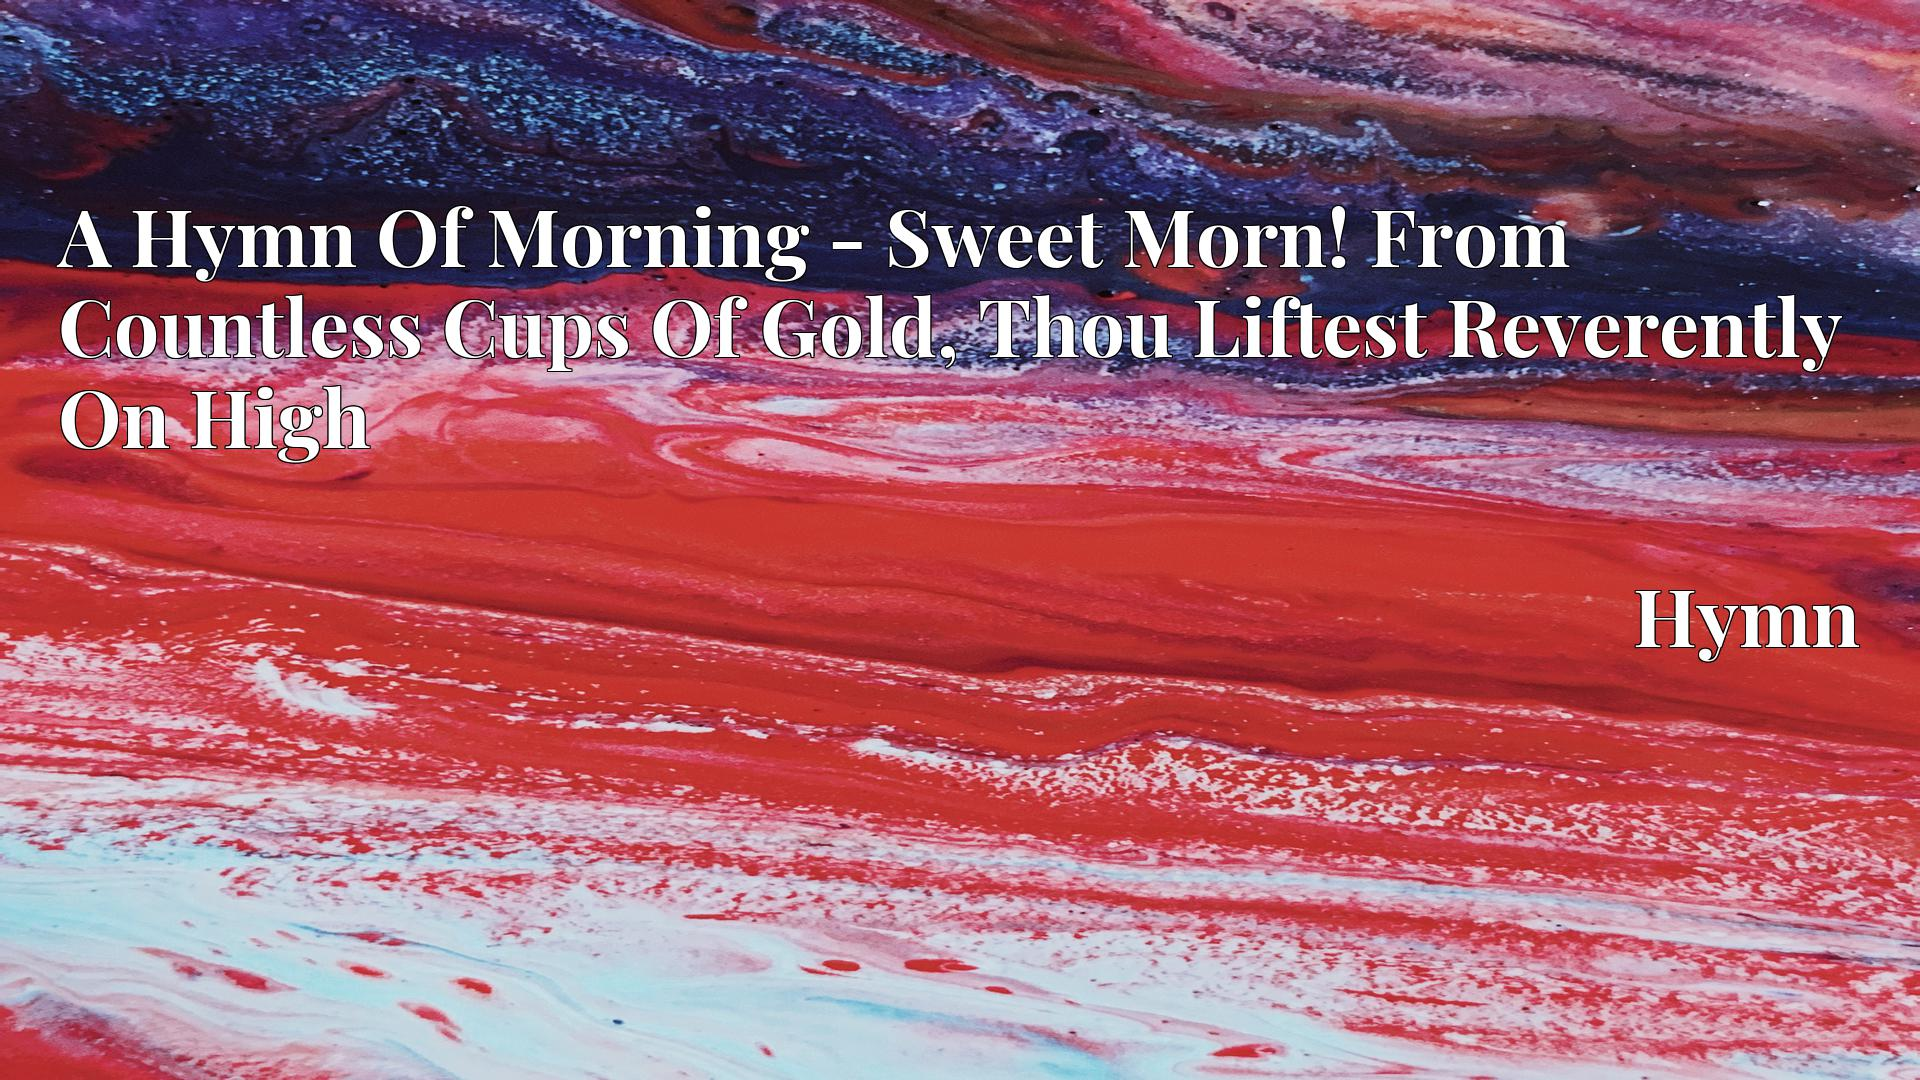 A Hymn Of Morning - Sweet Morn! From Countless Cups Of Gold, Thou Liftest Reverently On High - Hymn